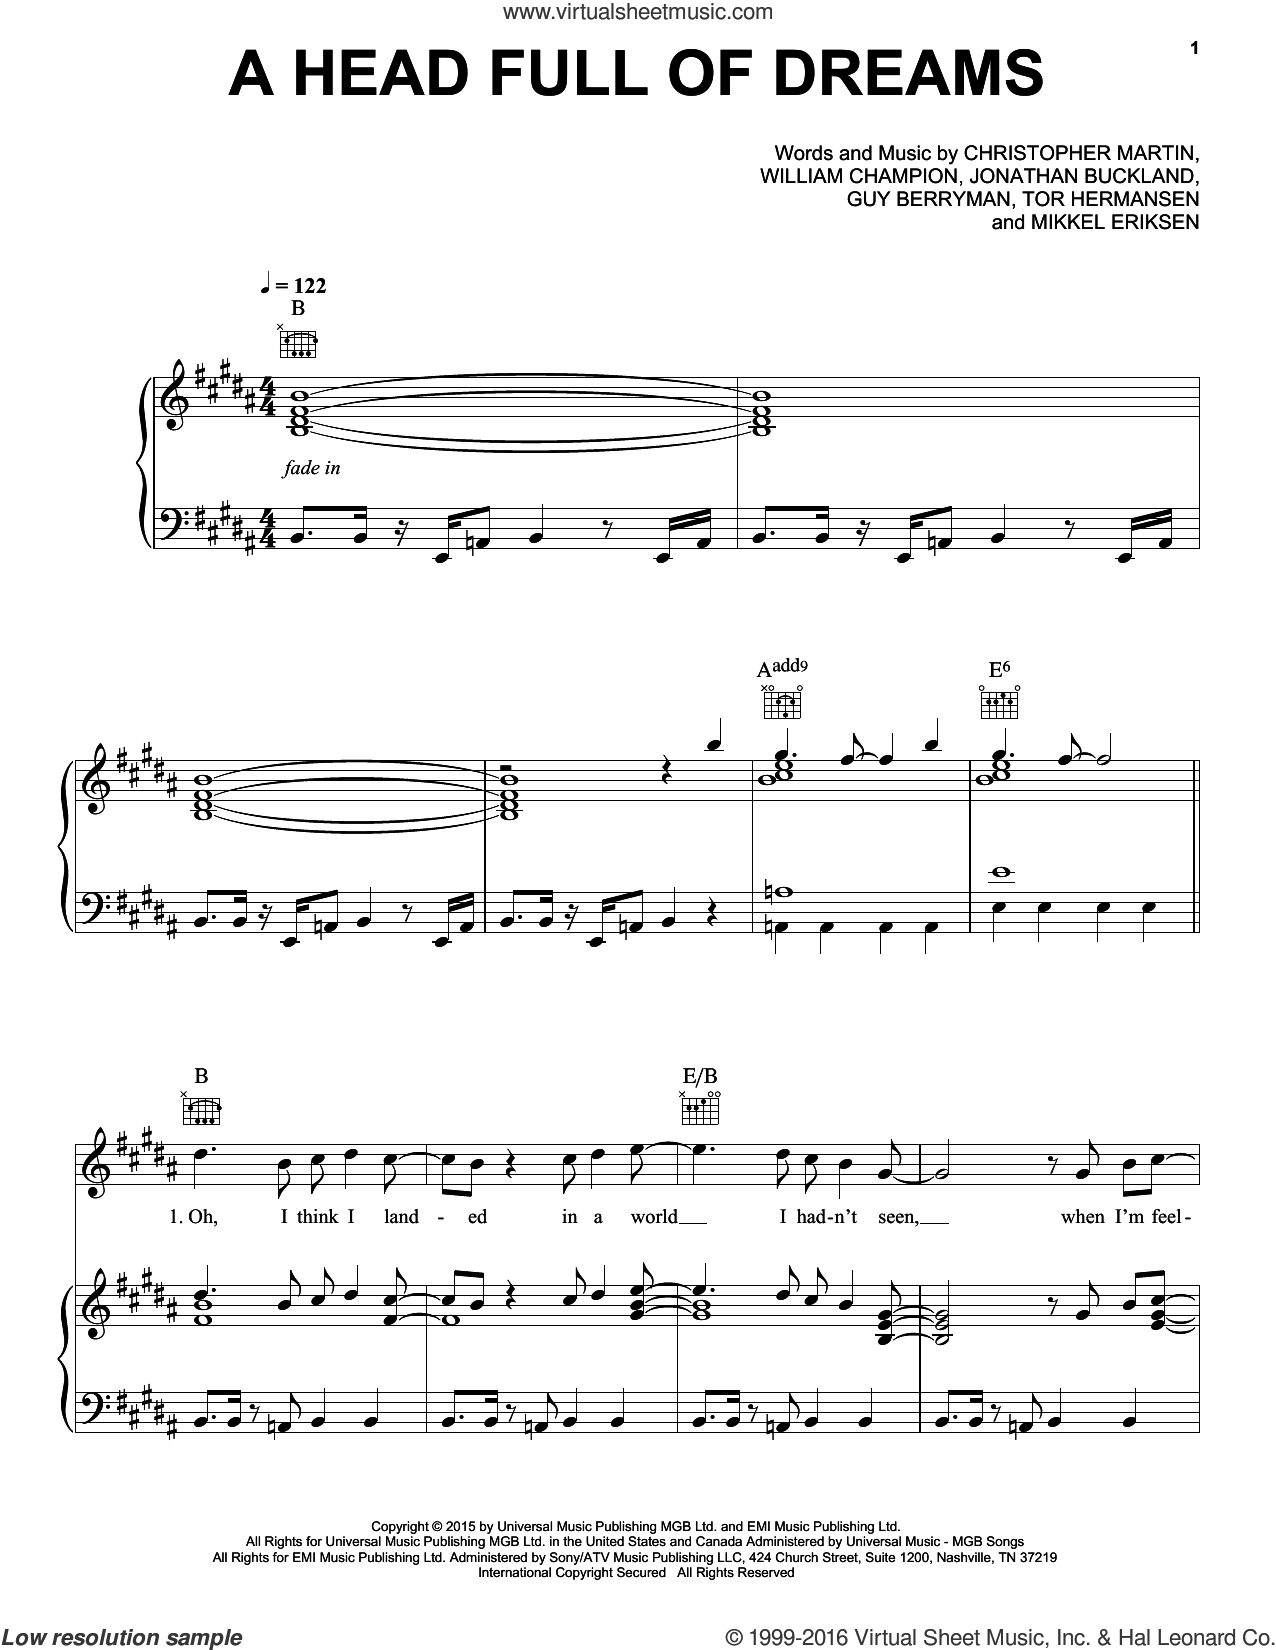 A Head Full Of Dreams sheet music for voice, piano or guitar by Guy Berryman, Coldplay, Christopher Martin, Jonathan Buckland, Mikkel Eriksen, Tor Erik Hermansen and William Champion, intermediate skill level